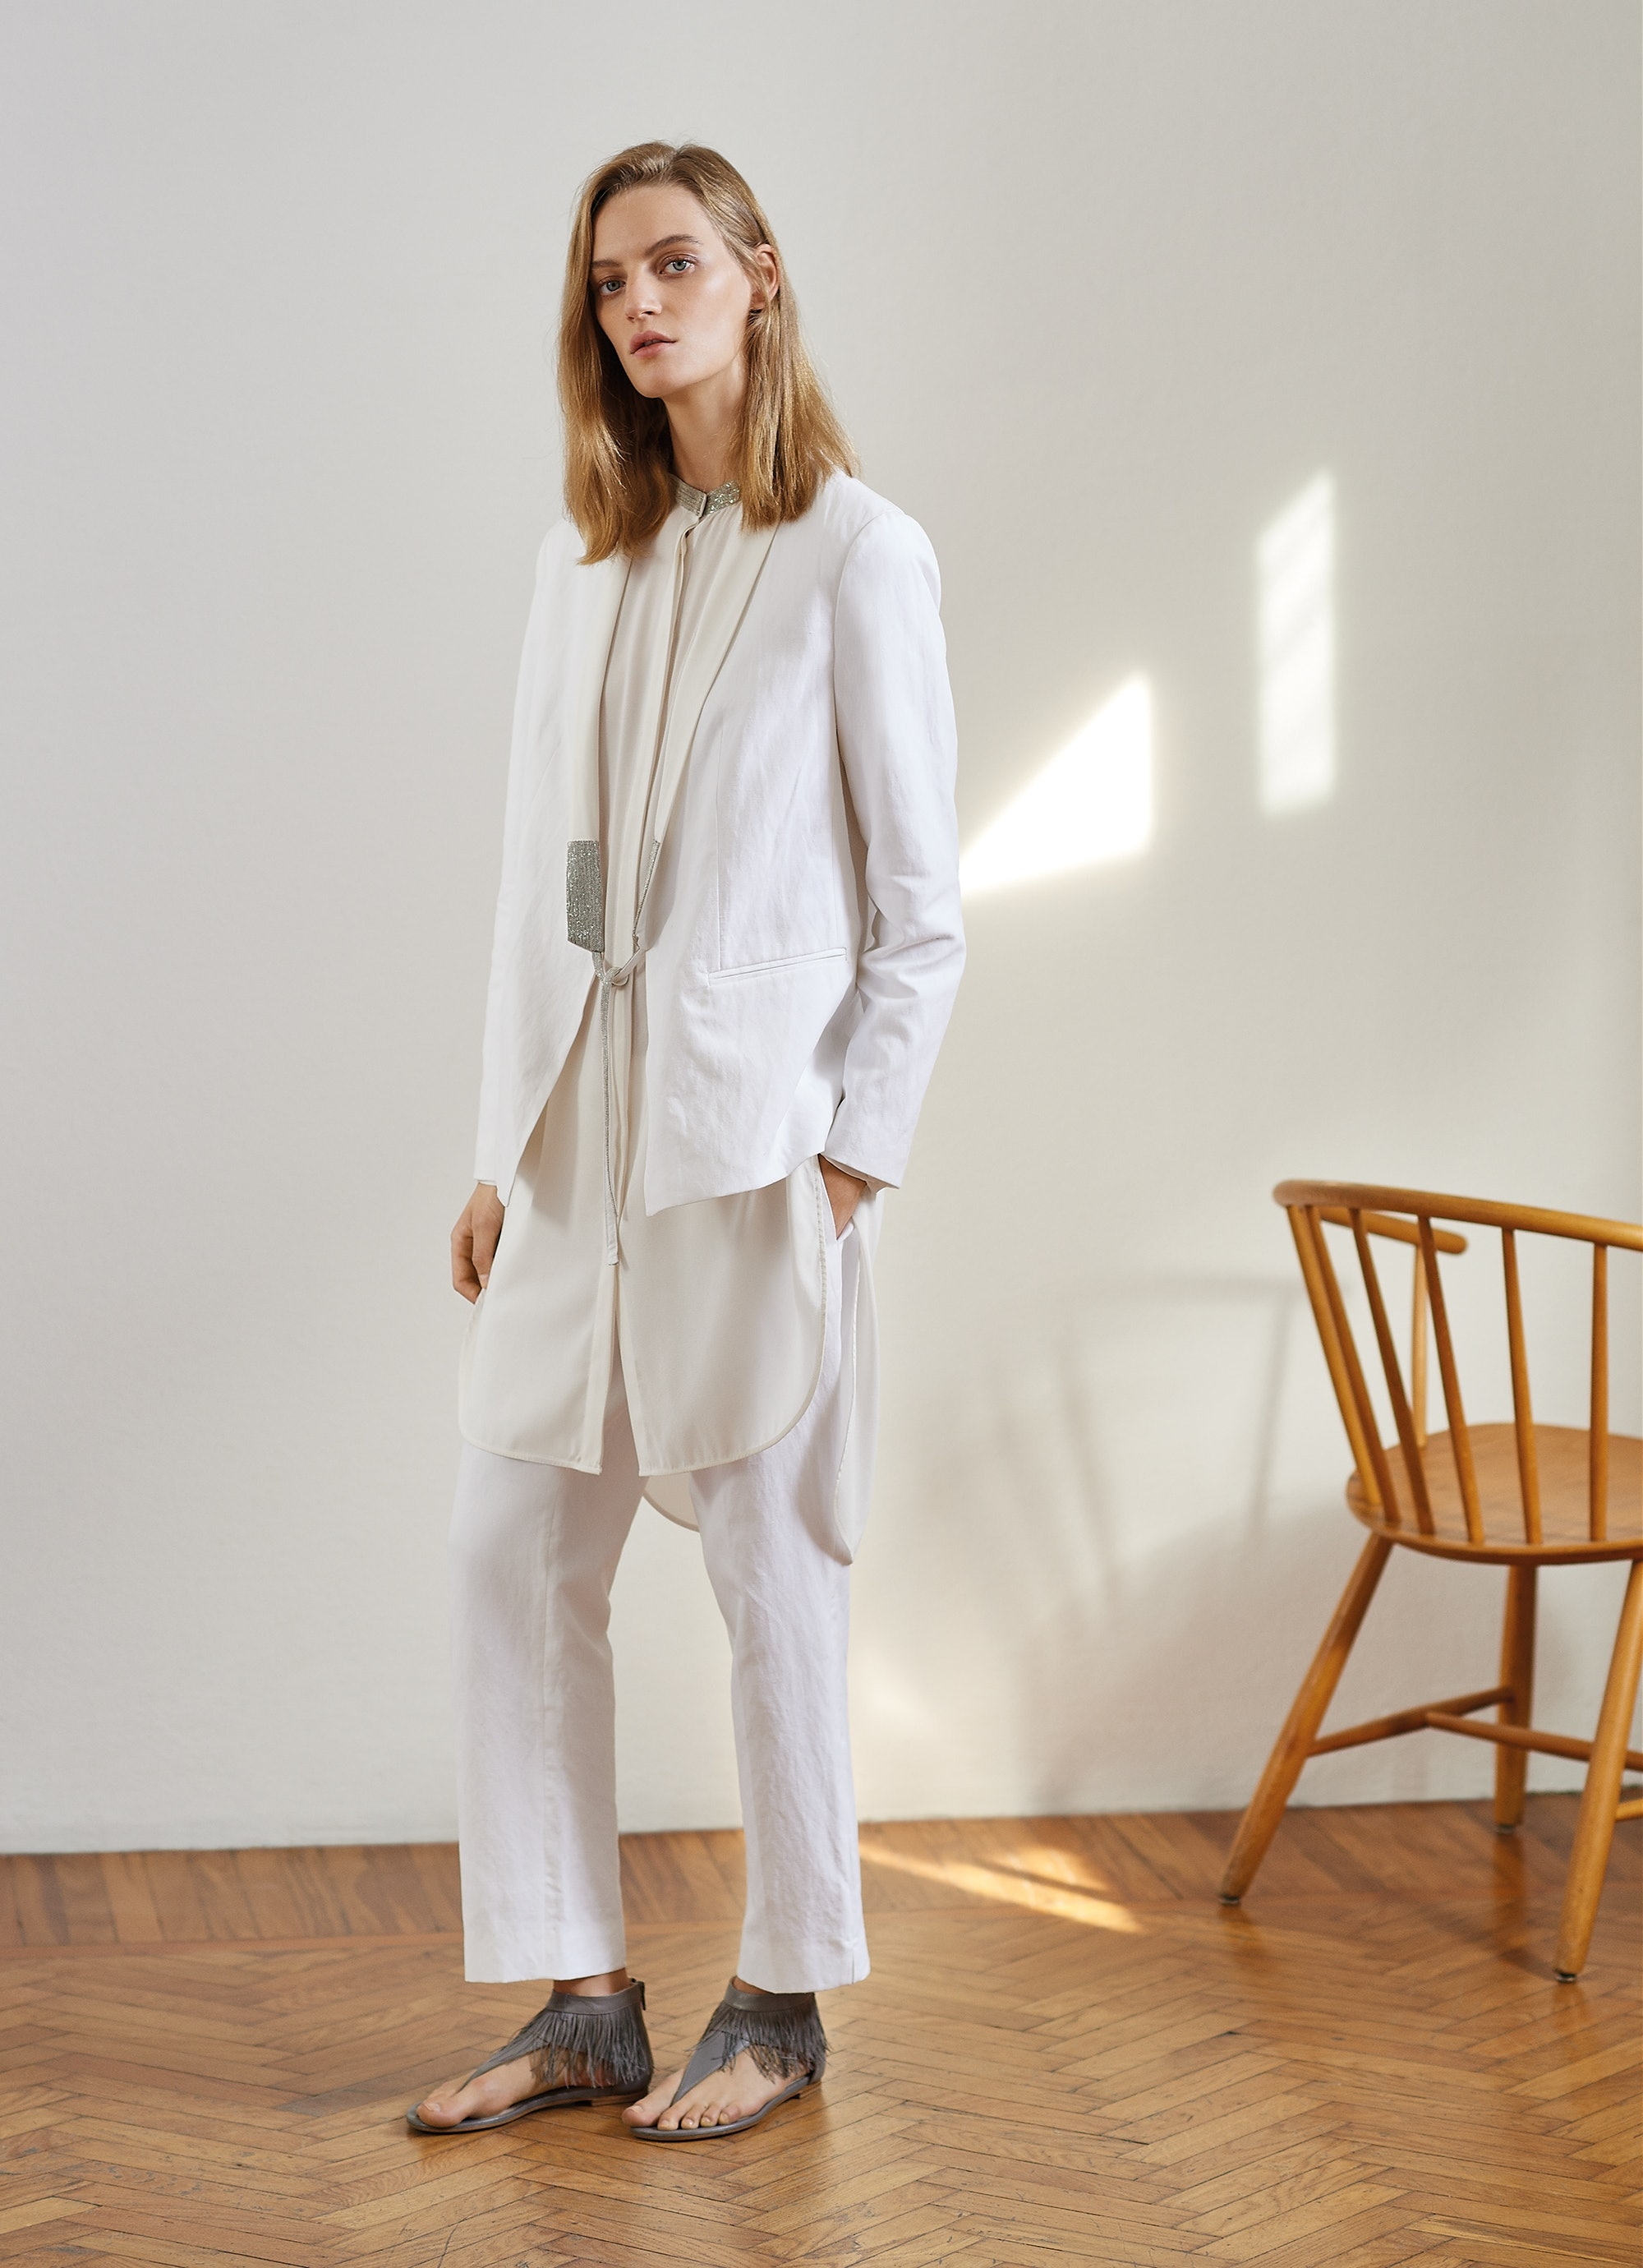 Fabiana Filippi, Spring / Summer Collection 2018, White, Blazer, Lodenfrey, Munich